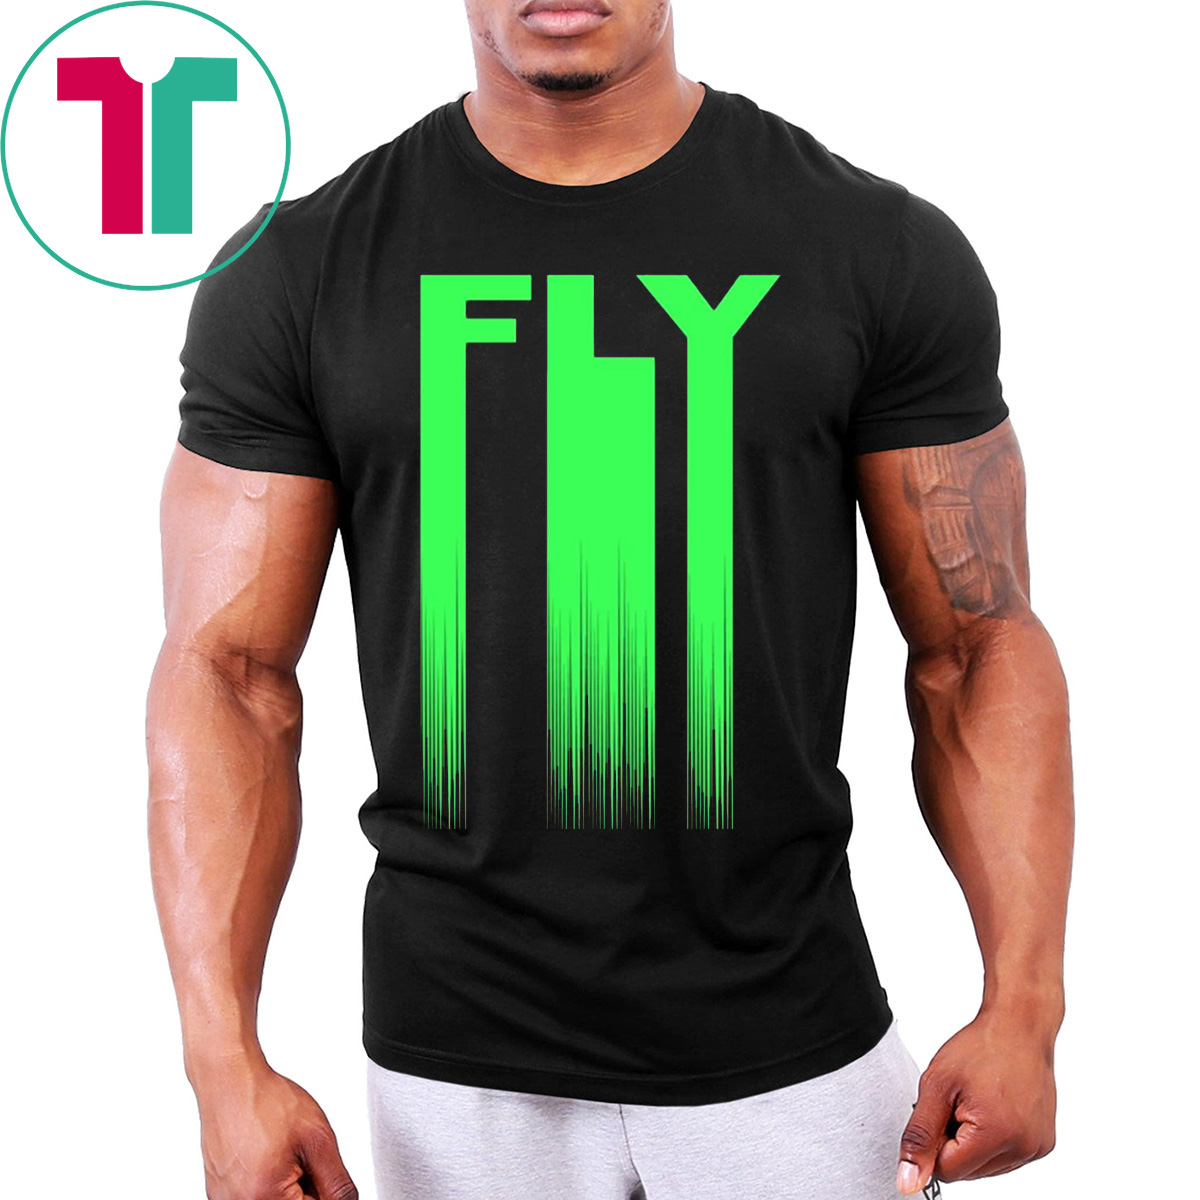 timeless design 1f4c4 23ea7 Mens Philadelphia Eagles Fly T-Shirt